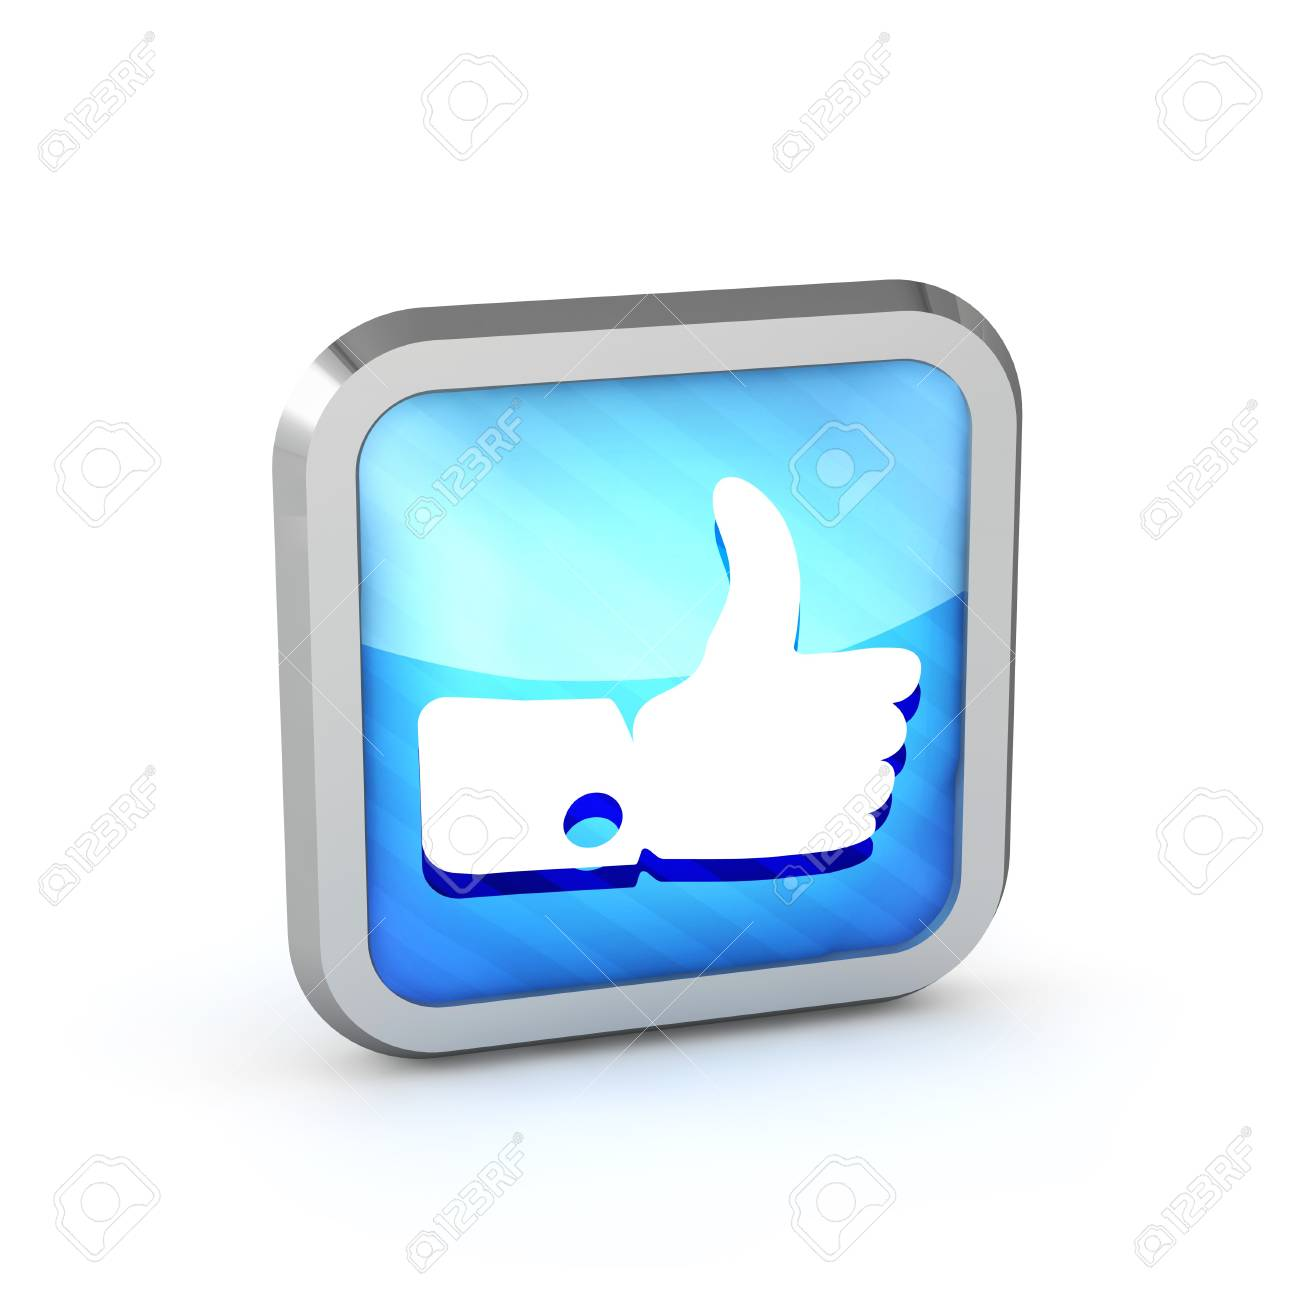 Blue striped like icon on a white background Stock Photo - 20071753